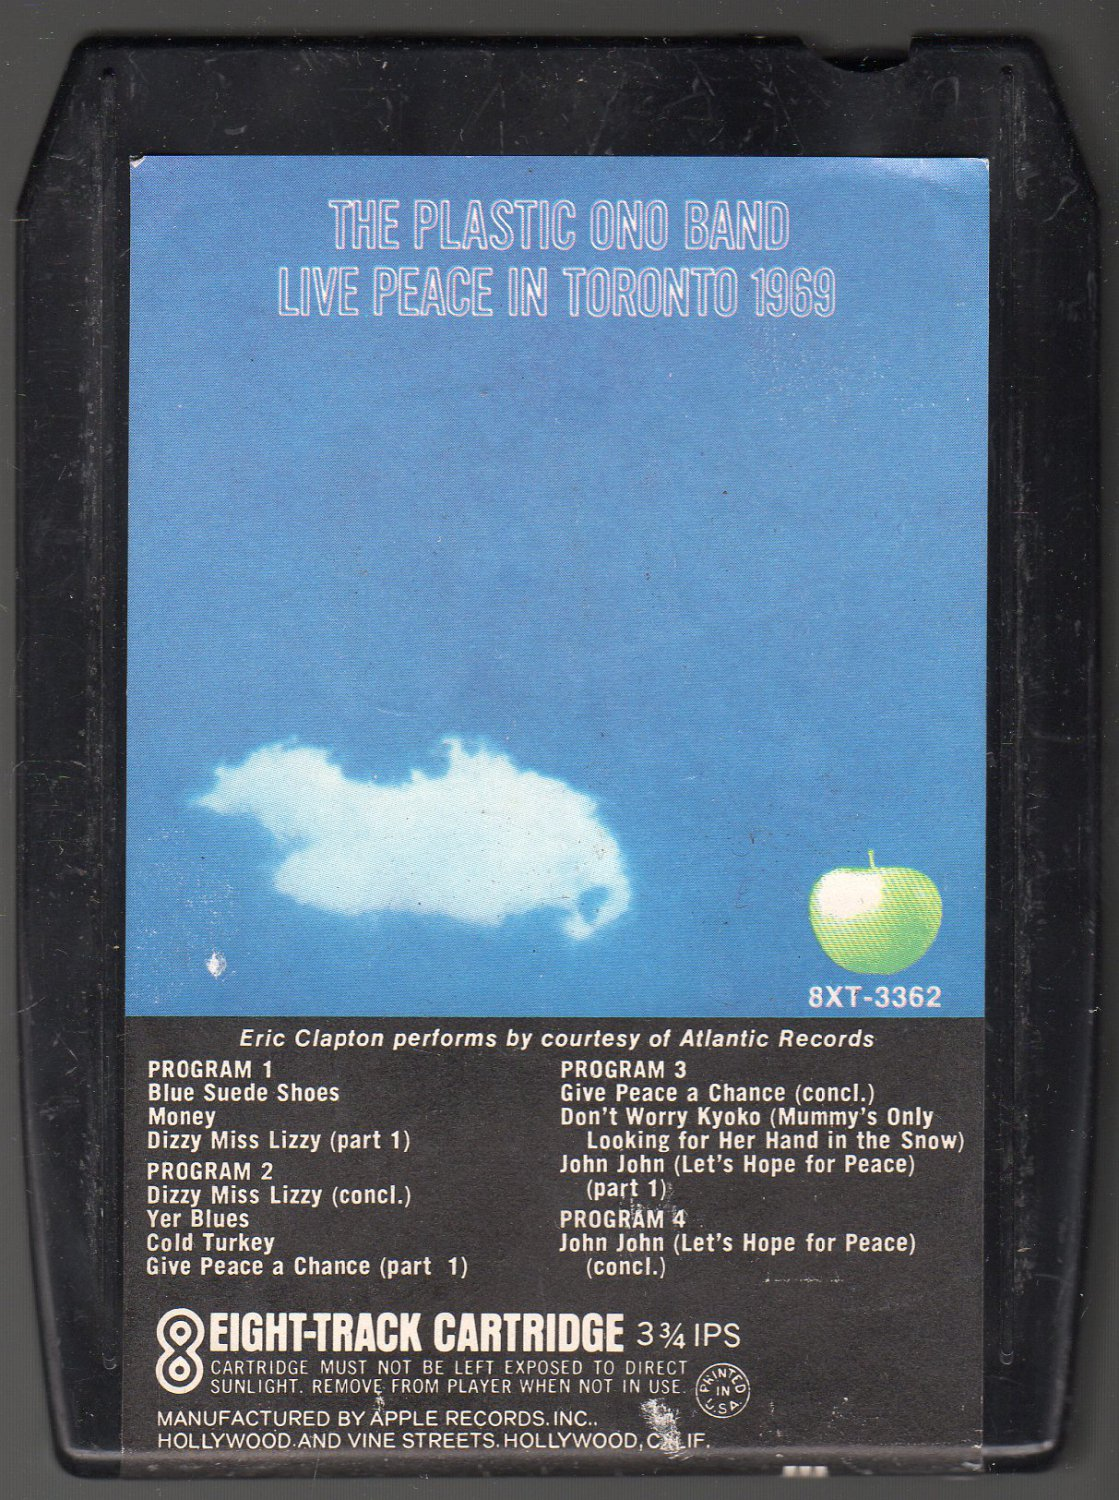 The Plastic Ono Band - Live Peace In Toronto 1969 A51 APPLE 8-track tape